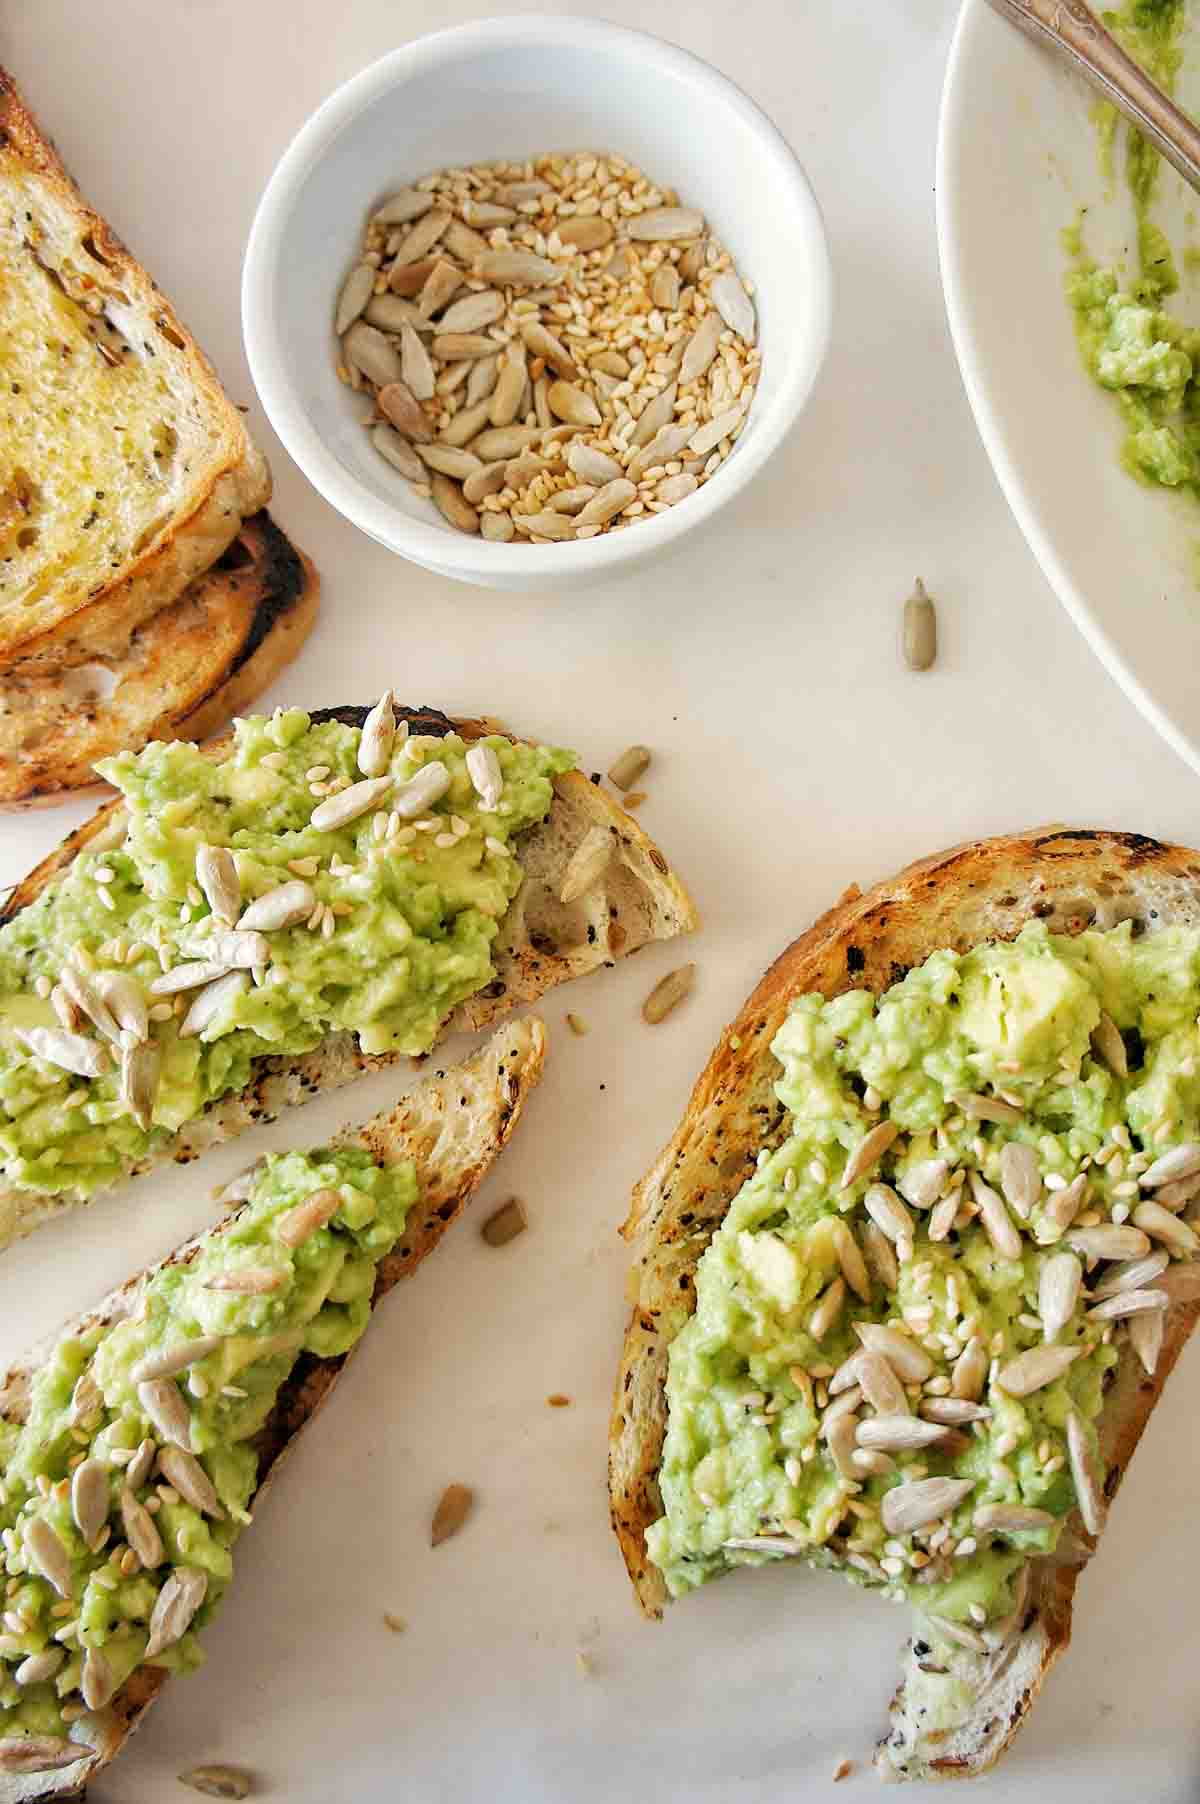 Avocado spread on toast with a small white bowl of seeds in the background